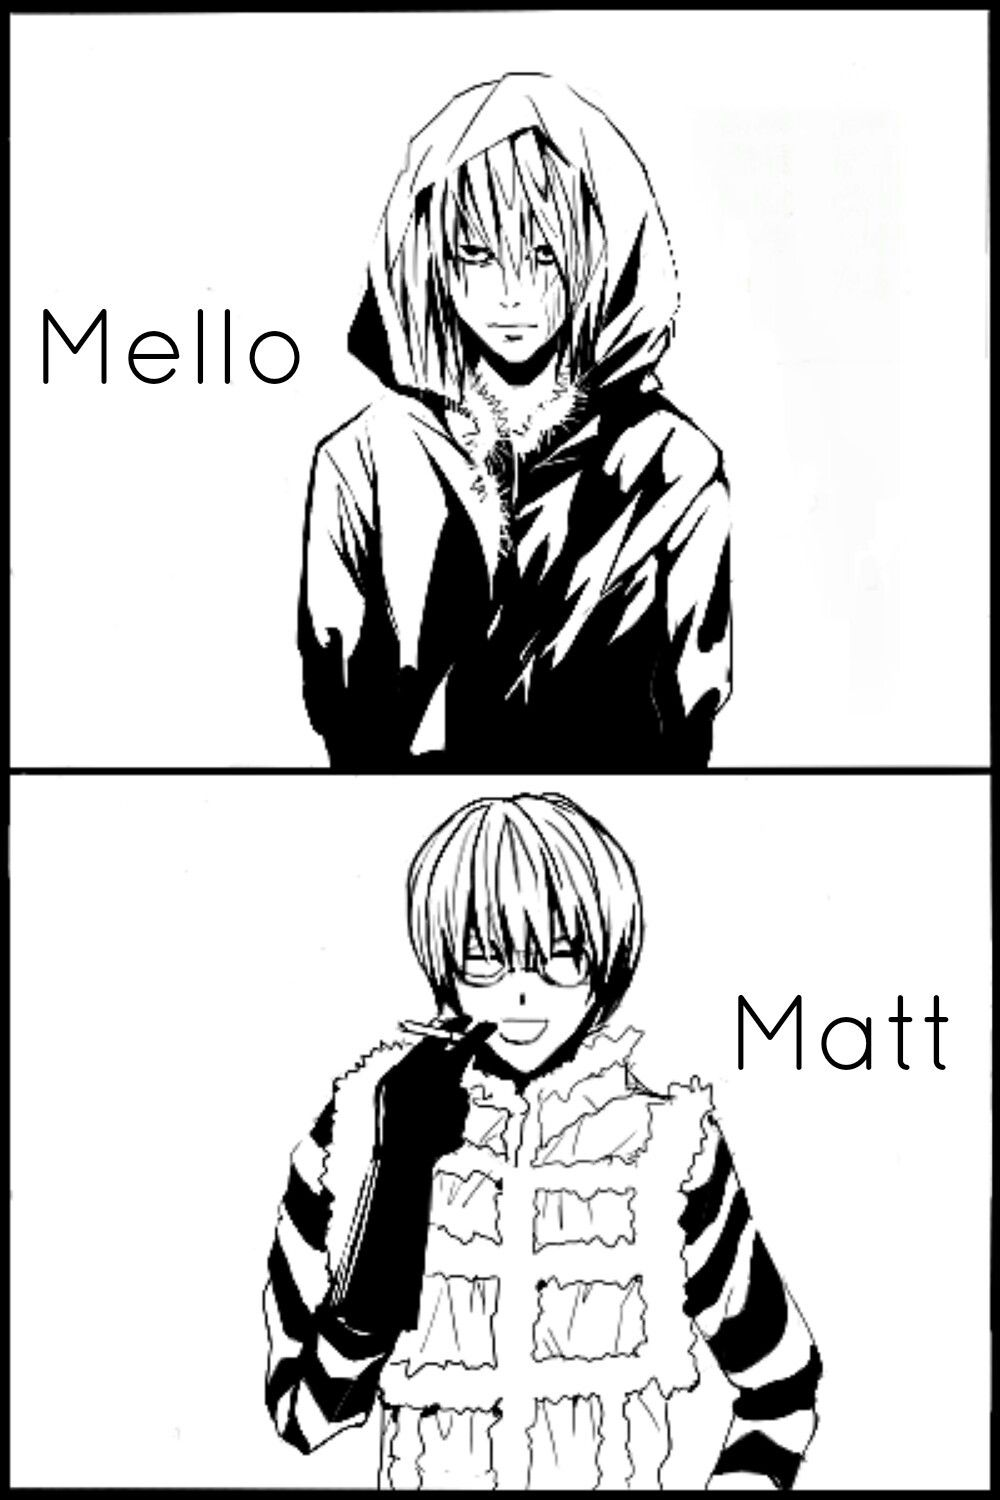 Matt and Mello Death note, Anime, Anime memes